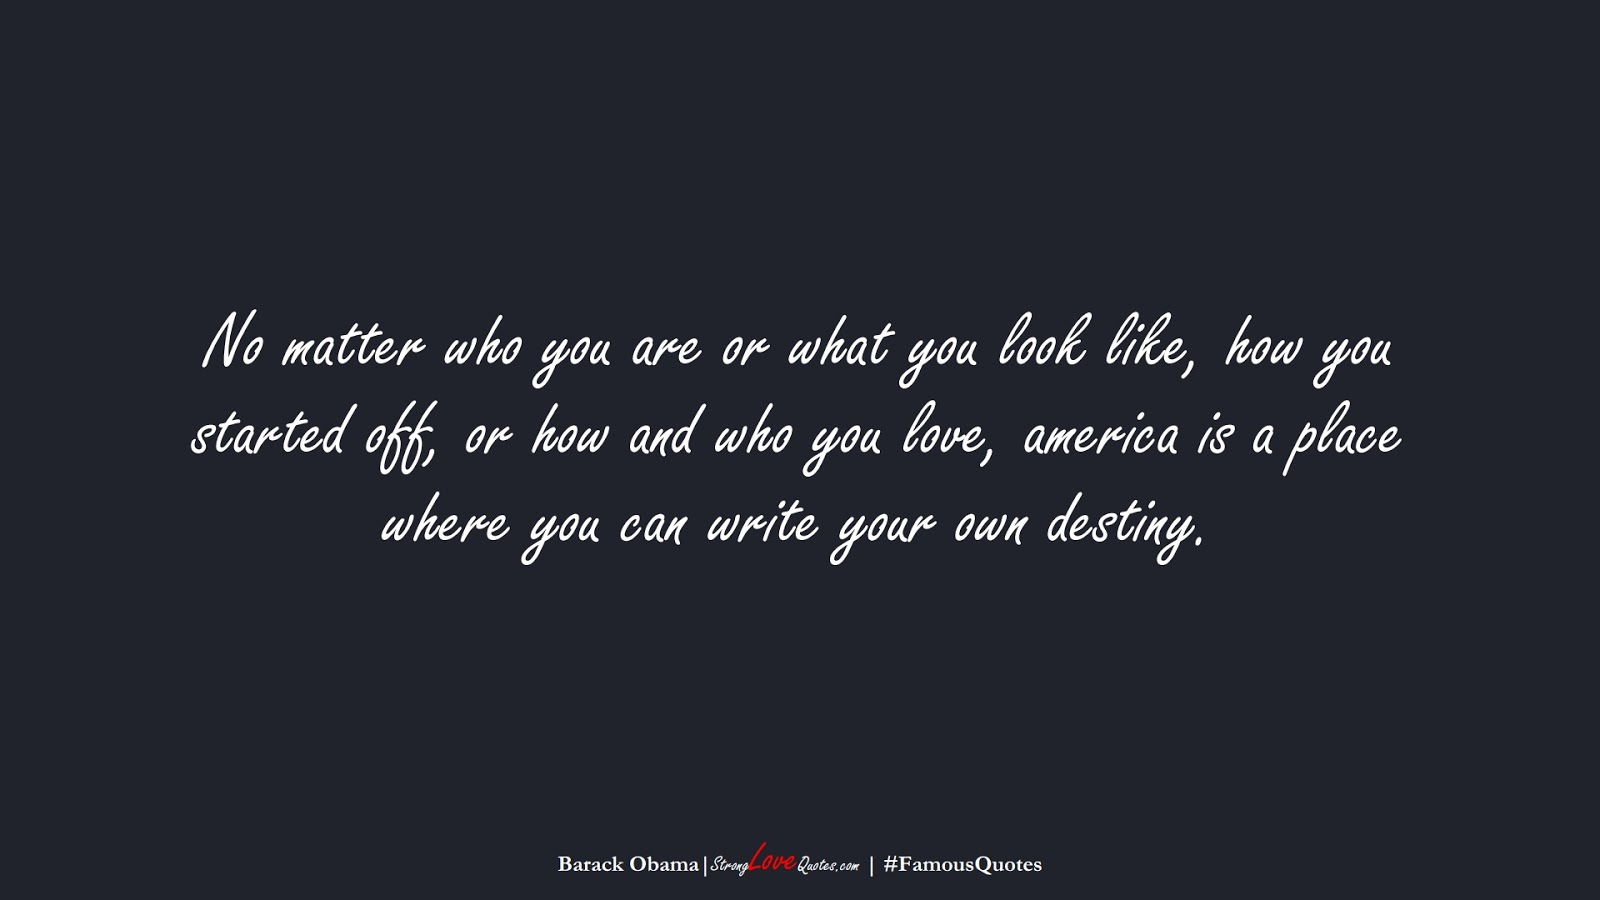 No matter who you are or what you look like, how you started off, or how and who you love, america is a place where you can write your own destiny. (Barack Obama);  #FamousQuotes